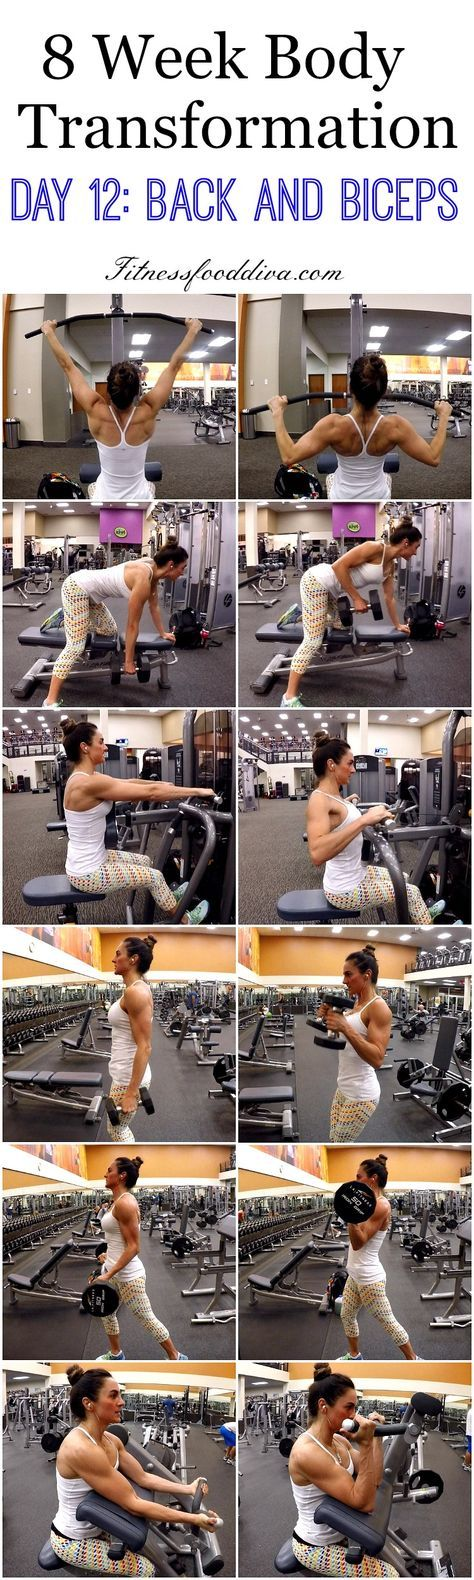 Build bigger biceps with this one trick 8 week Body Transformation: Day 12 Back and Biceps.